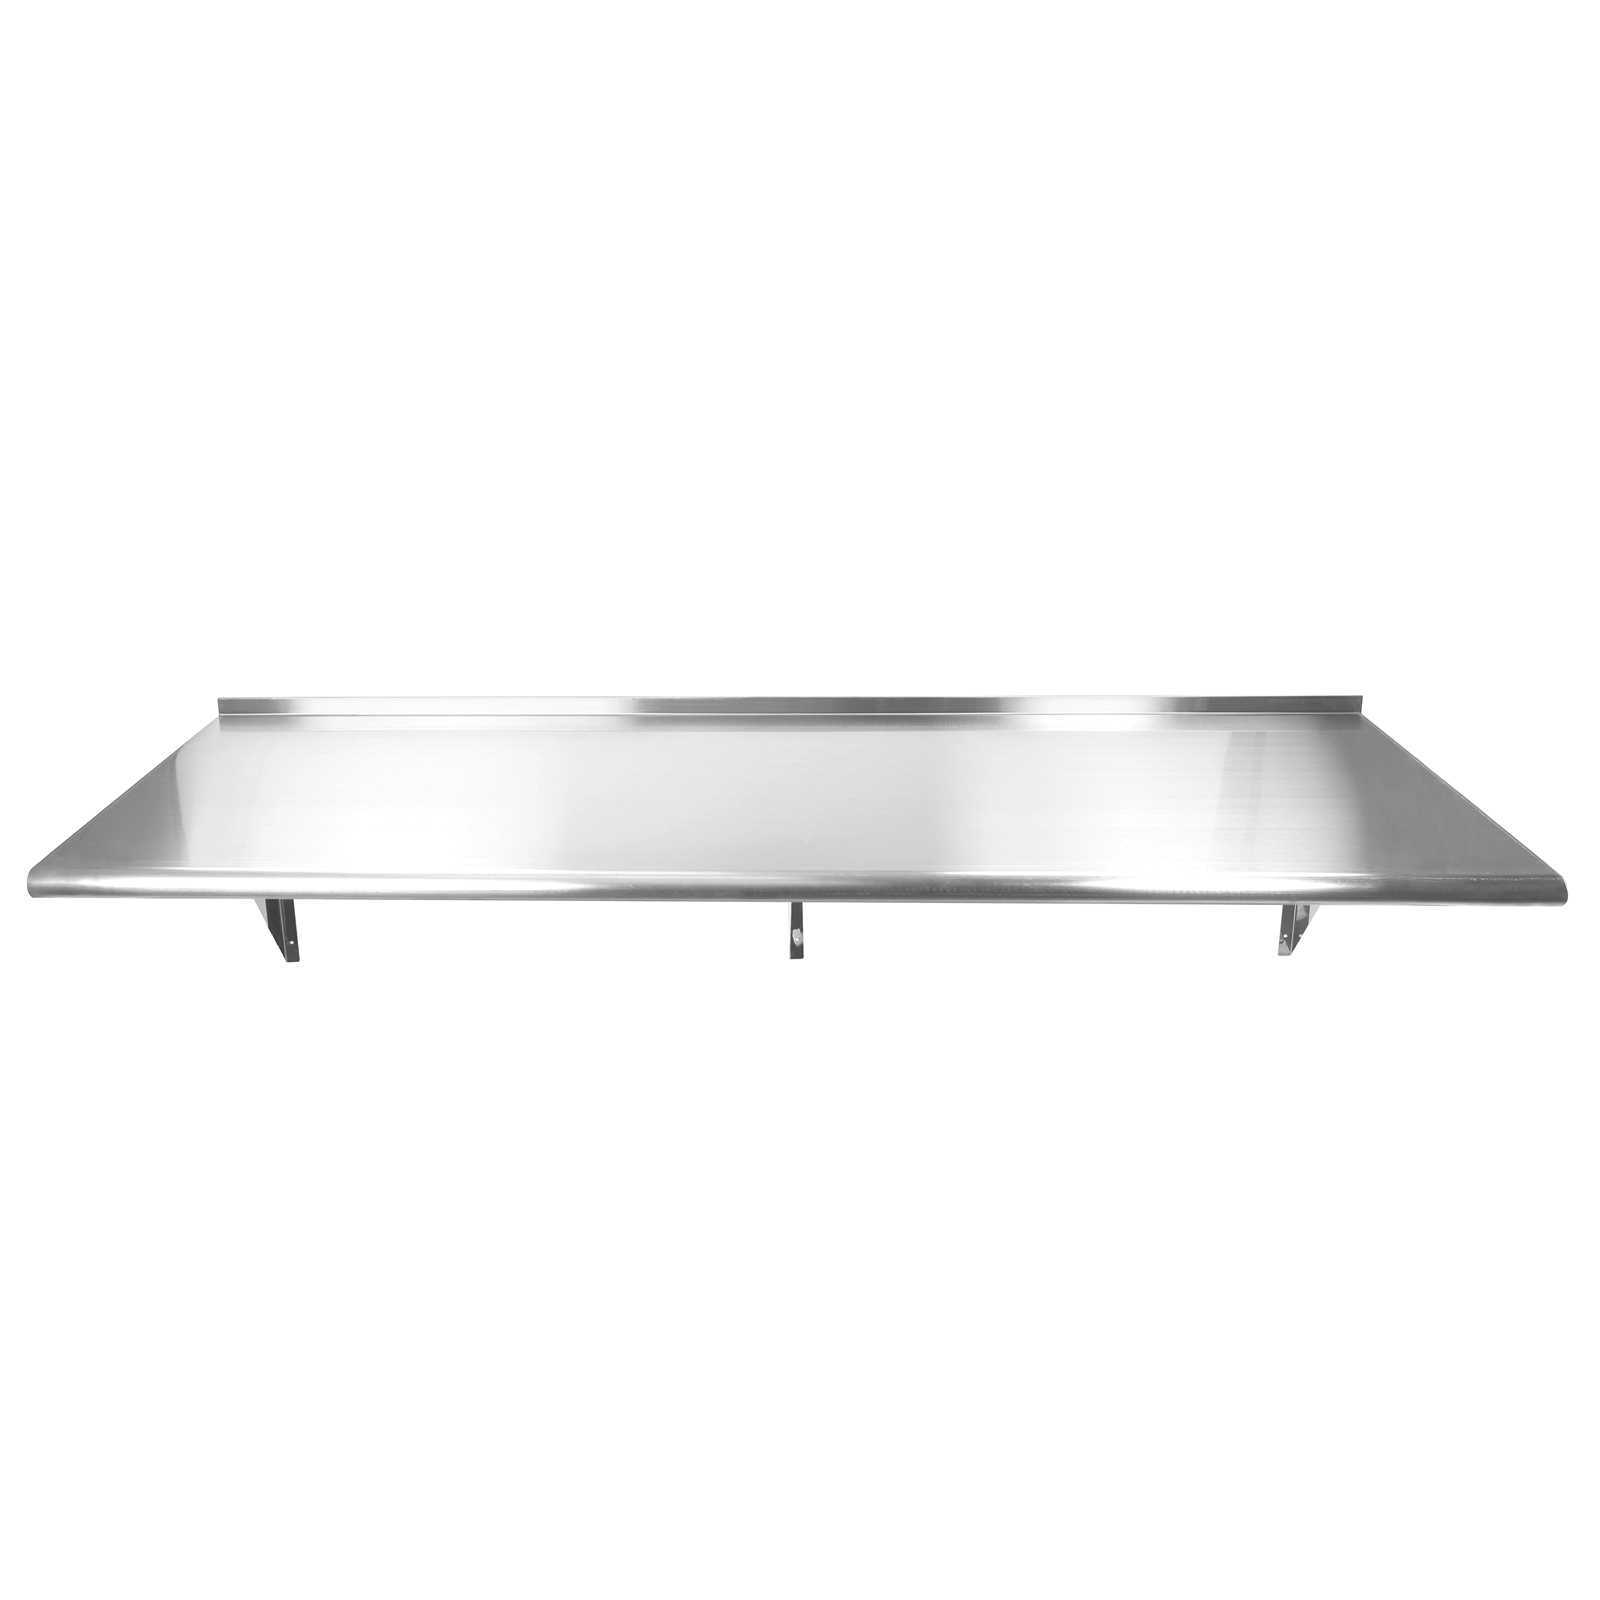 Gridmann NSF Stainless Steel Kitchen Wall Mount Shelf Commercial Restaurant Bar w/ Backsplash - 72 in. x 18 in.